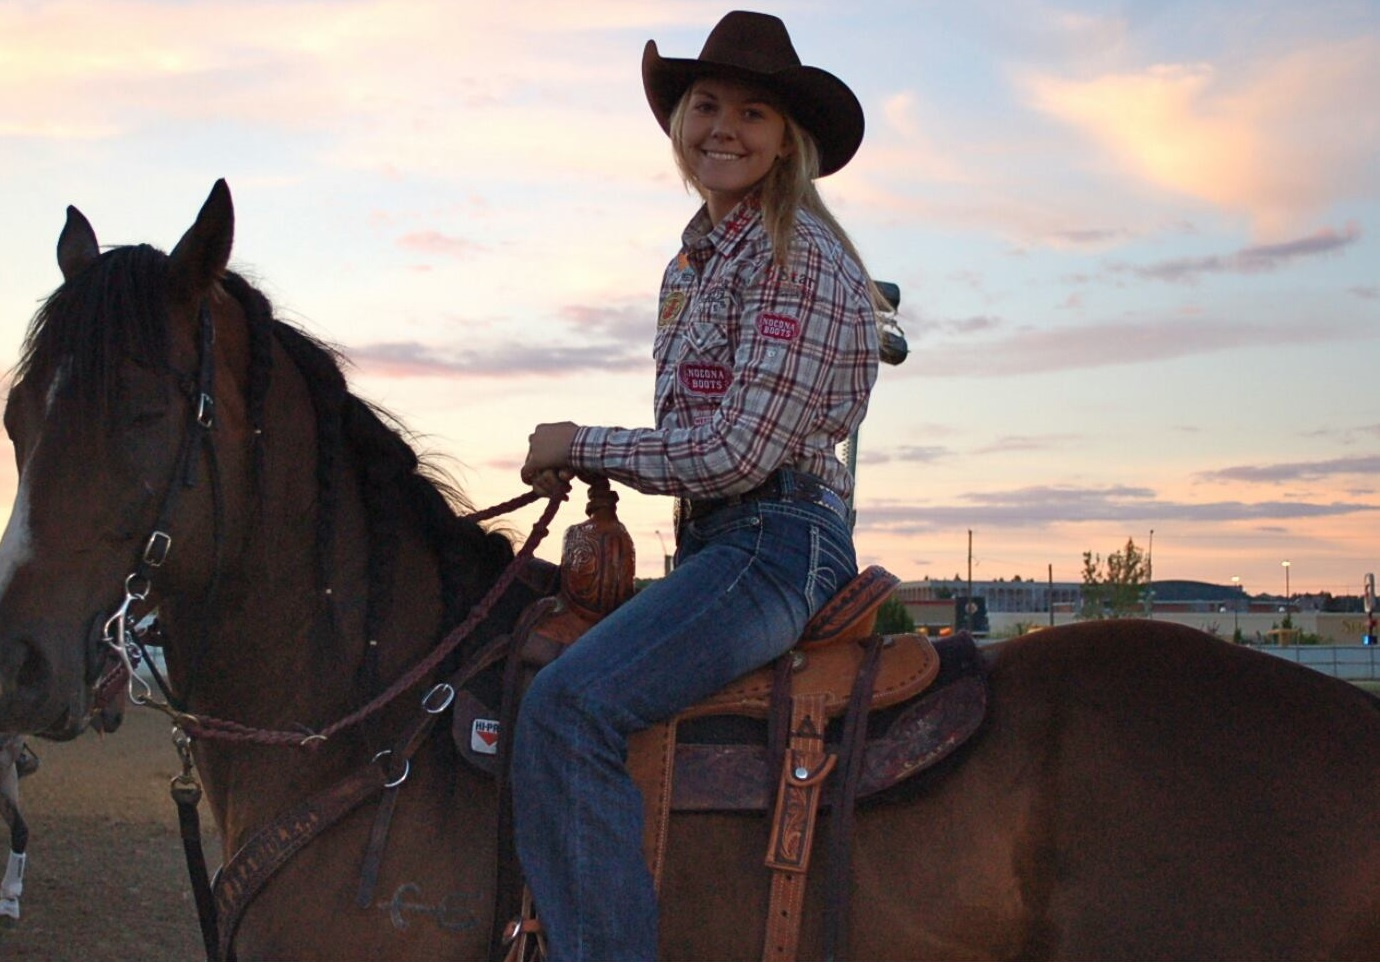 Jackie Ganter S Barrel Racing Success Sparked By Powerful